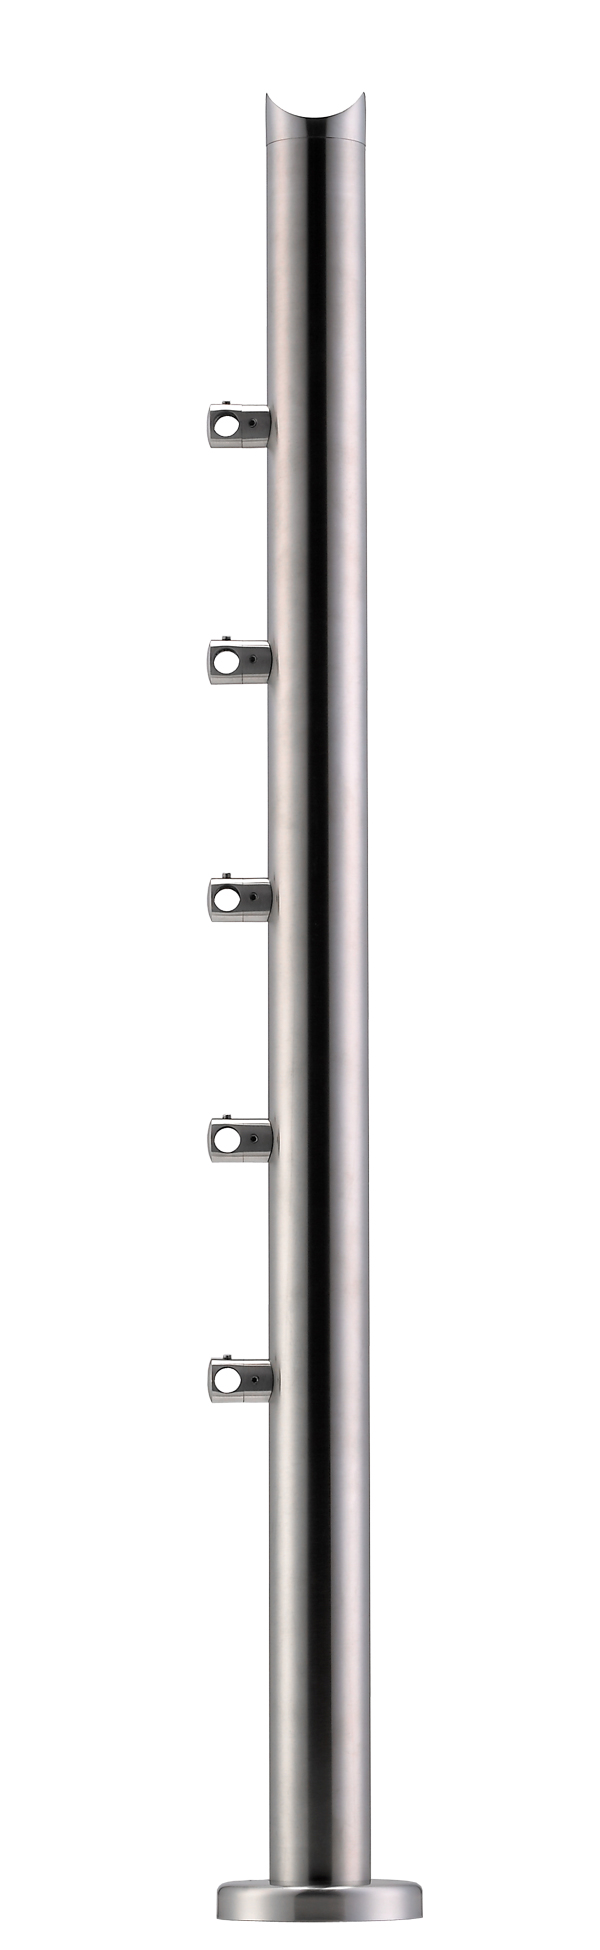 Stainless Steel Balustrade Posts - Tubular - SS:2020577A